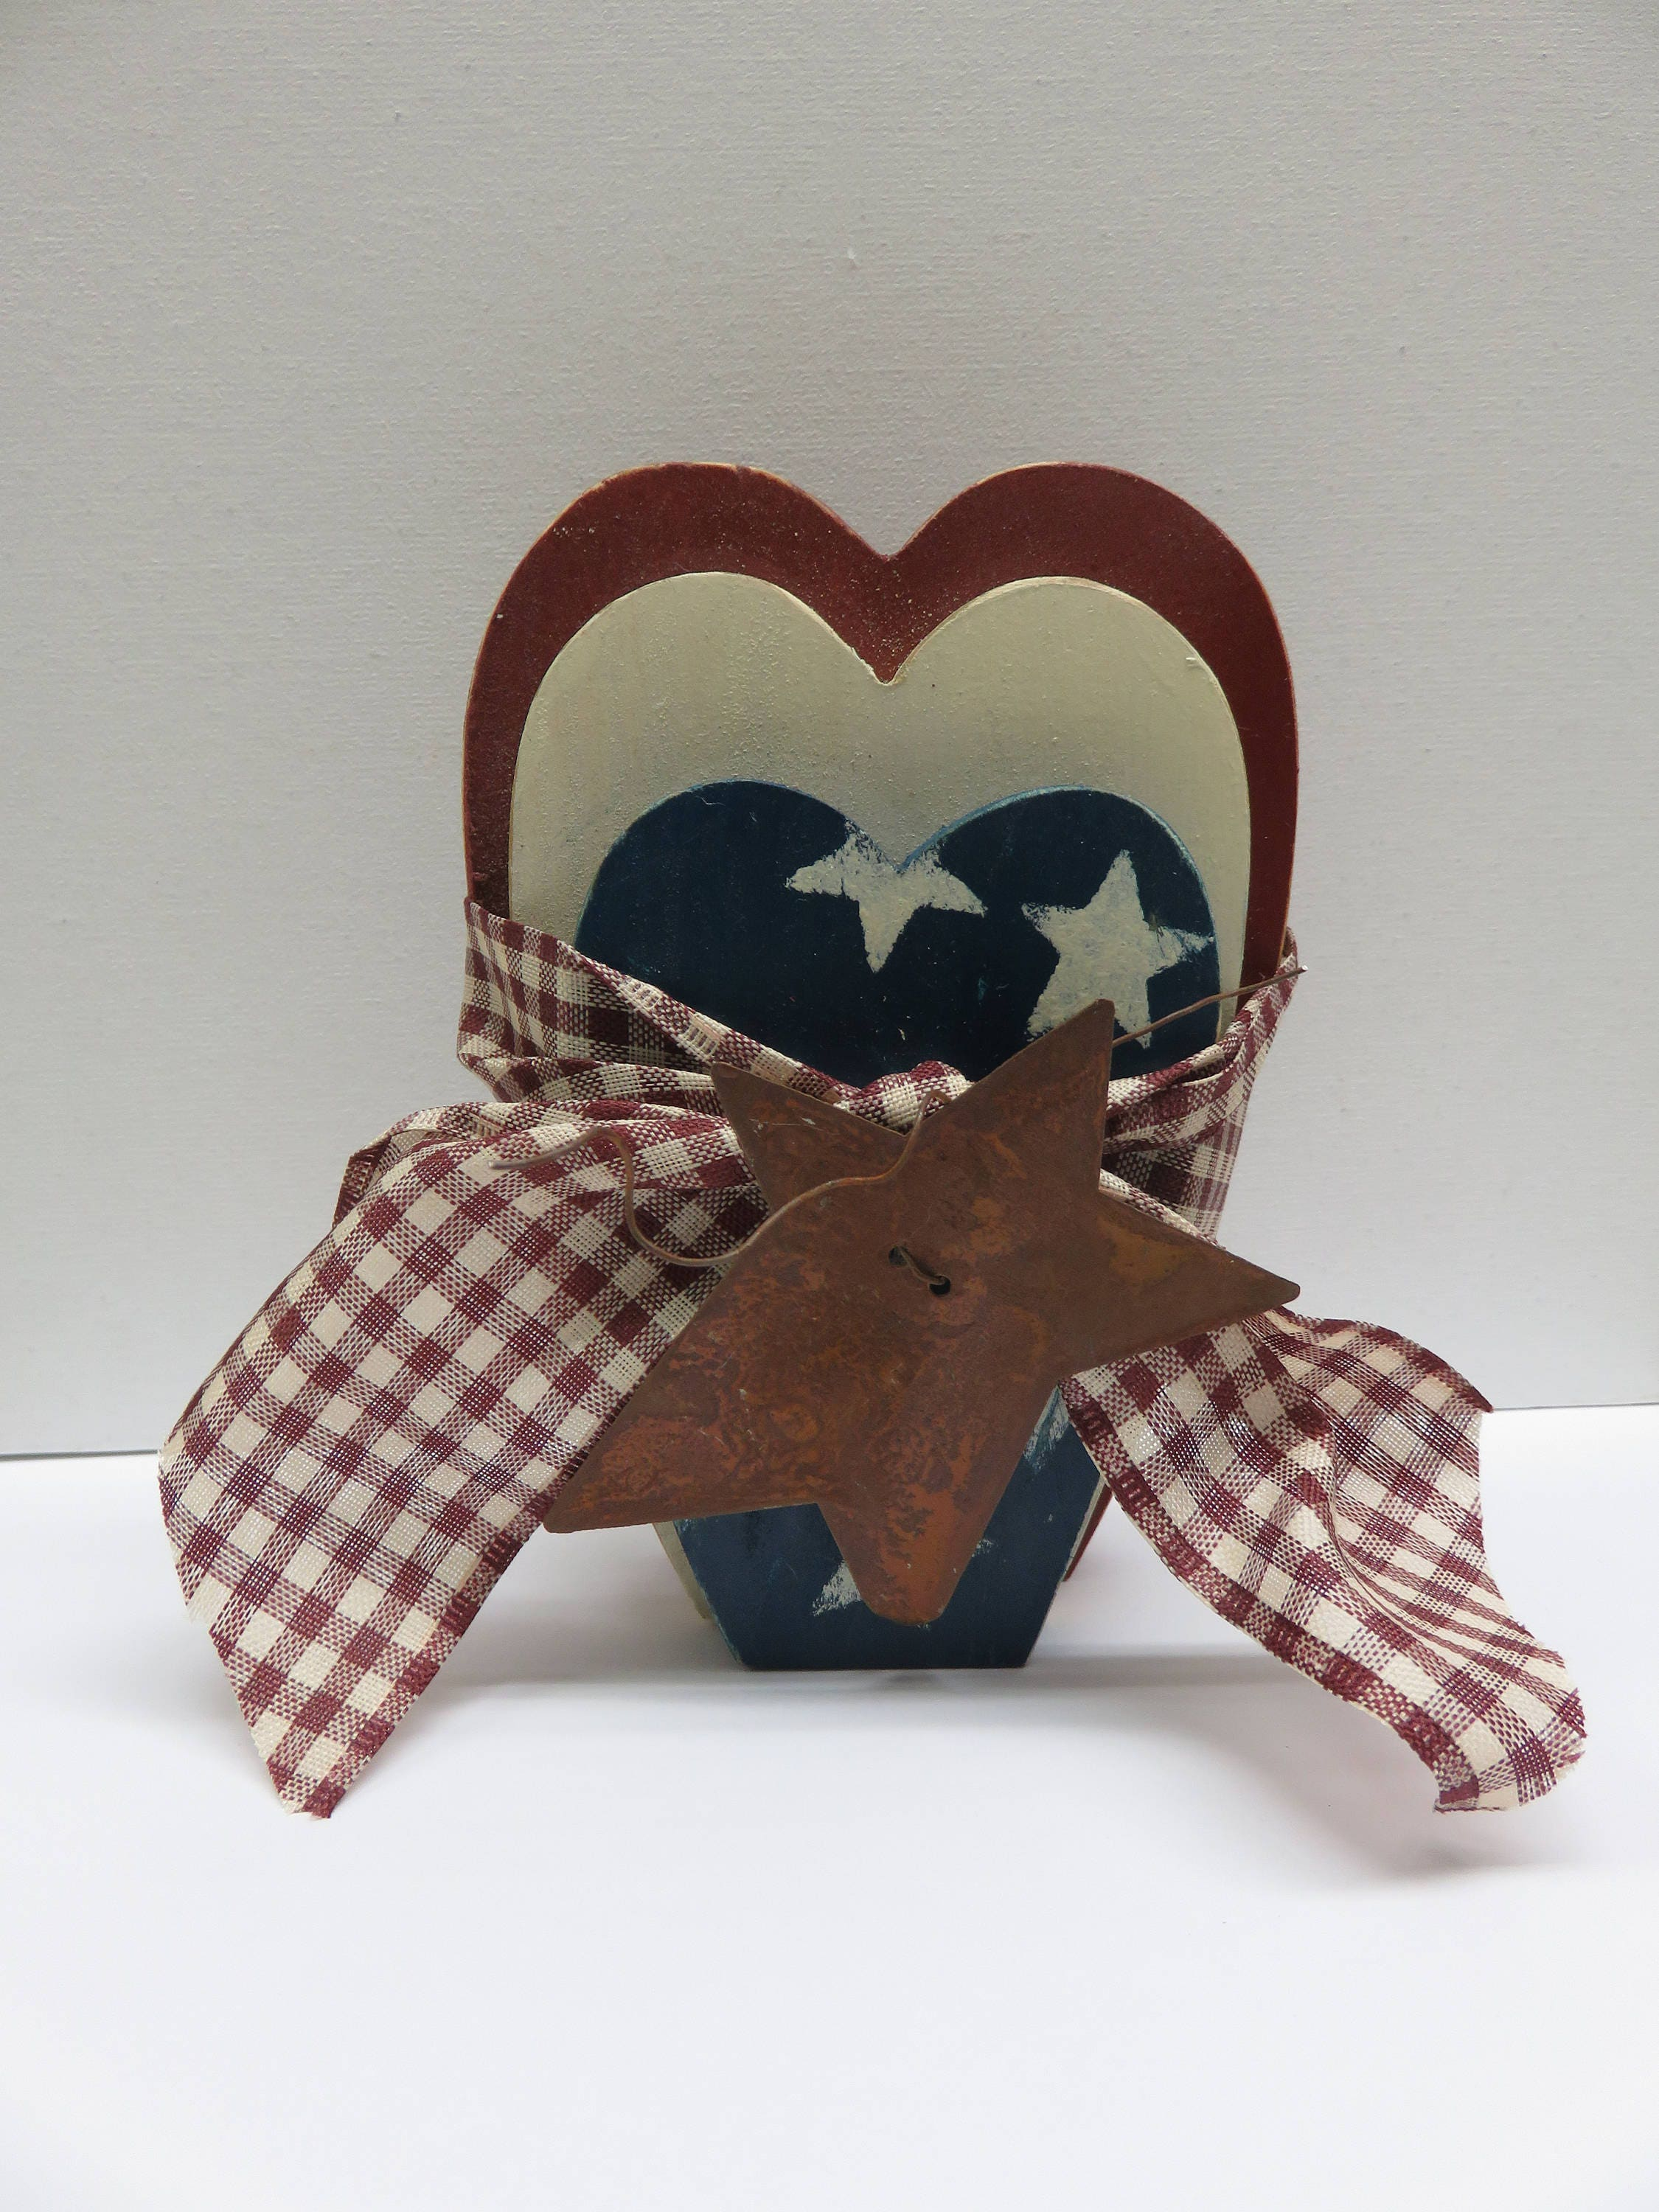 Americana,Trio,of,Hearts,Country,Style,Set,Housewares,Home_Decor,americana,america,country_hearts,hearts,trio_of_hearts,Americana_hearts,for_your_home,home_decor,painted_hearts,red_white_blue,heart_decor,nested_hearts,heart,wood,fabric,tin